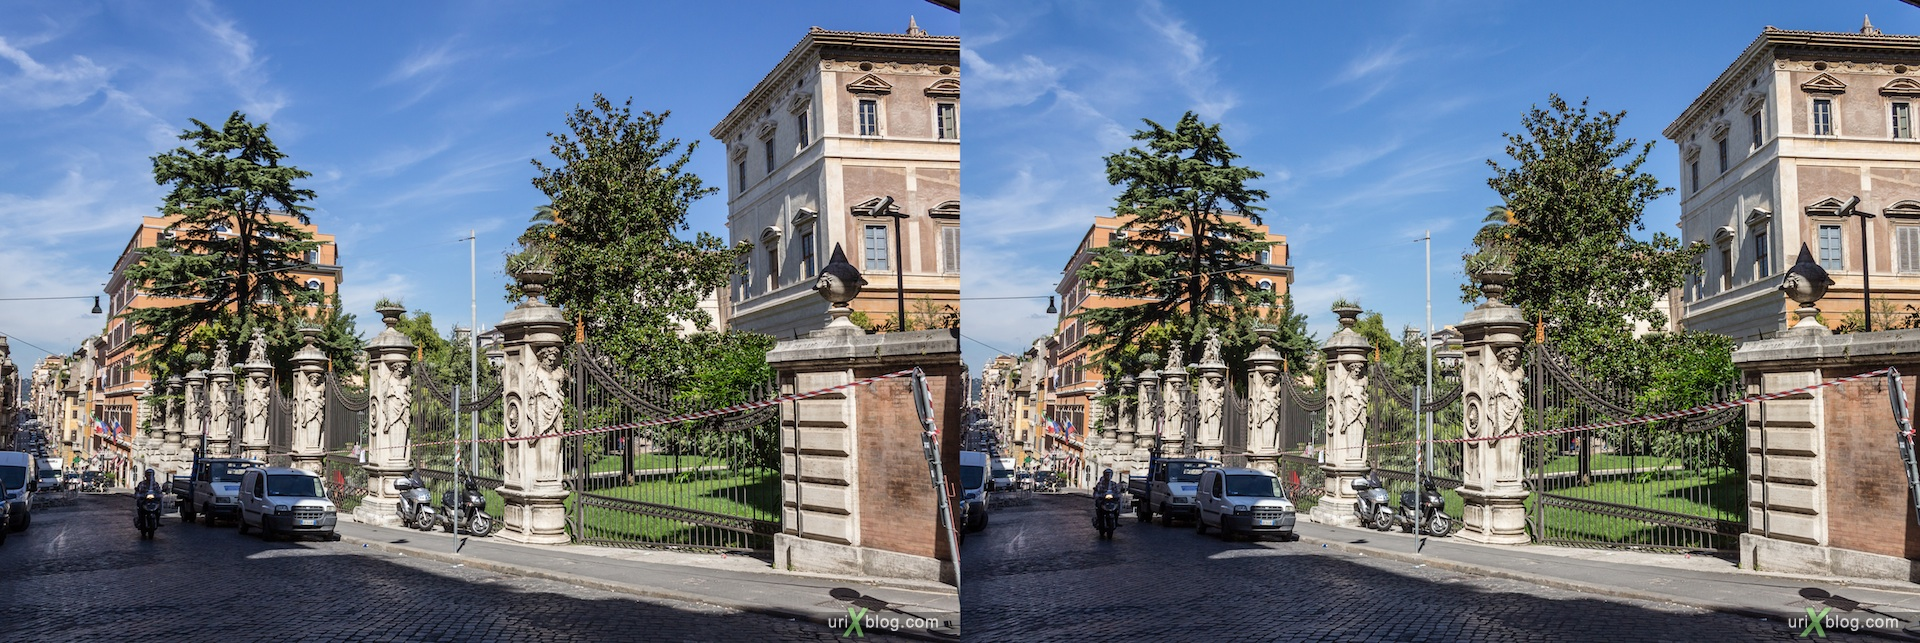 2012, fence, Barberini palace, Palazzo Barberini, Via delle Quattro Fontane street,Rome, Italy, Europe, 3D, stereo pair, cross-eyed, crossview, cross view stereo pair